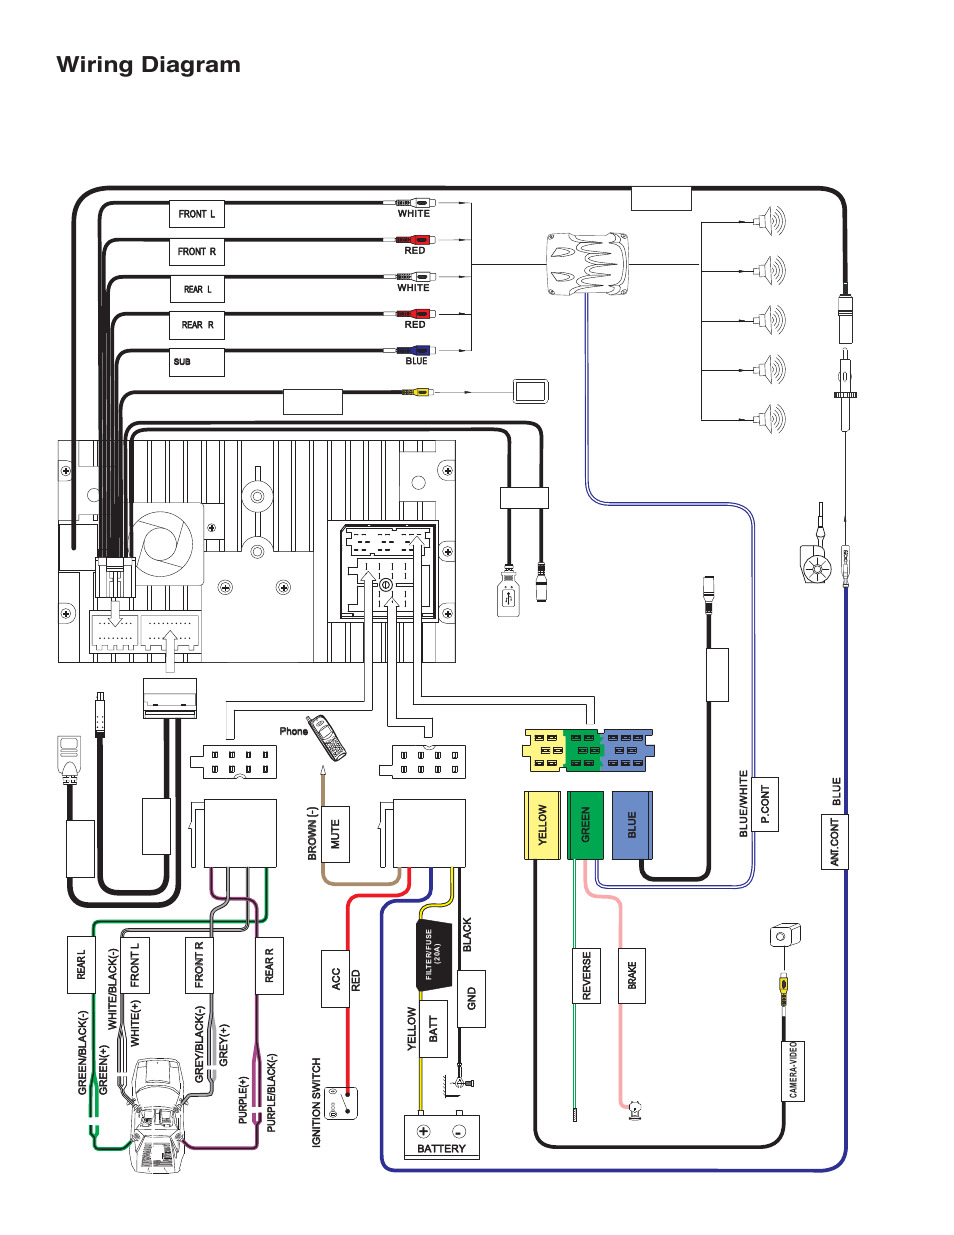 Diagram  16pin Car Stereo Radio Wiring Harness Connector Plug Iso Wiring Diagram Full Version